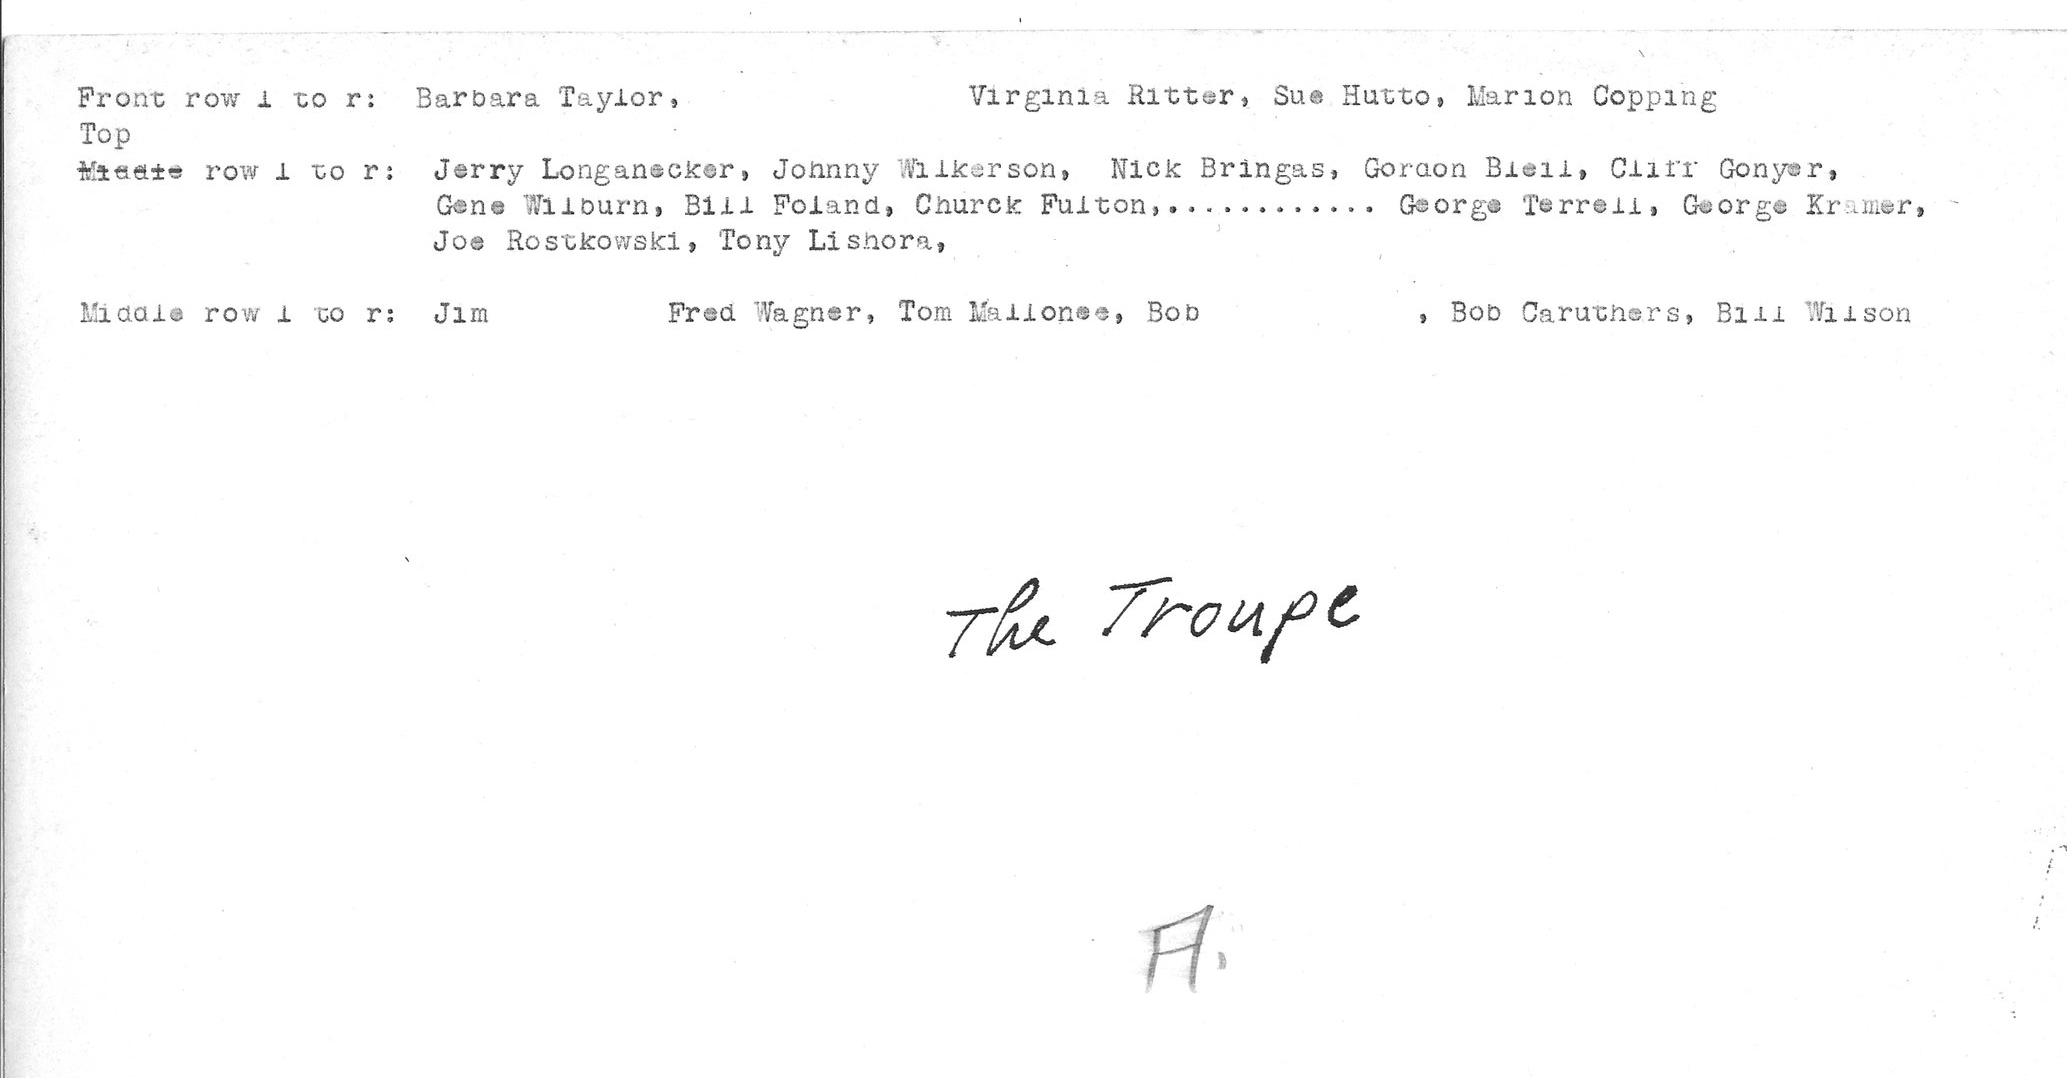 1951 Troupe roster